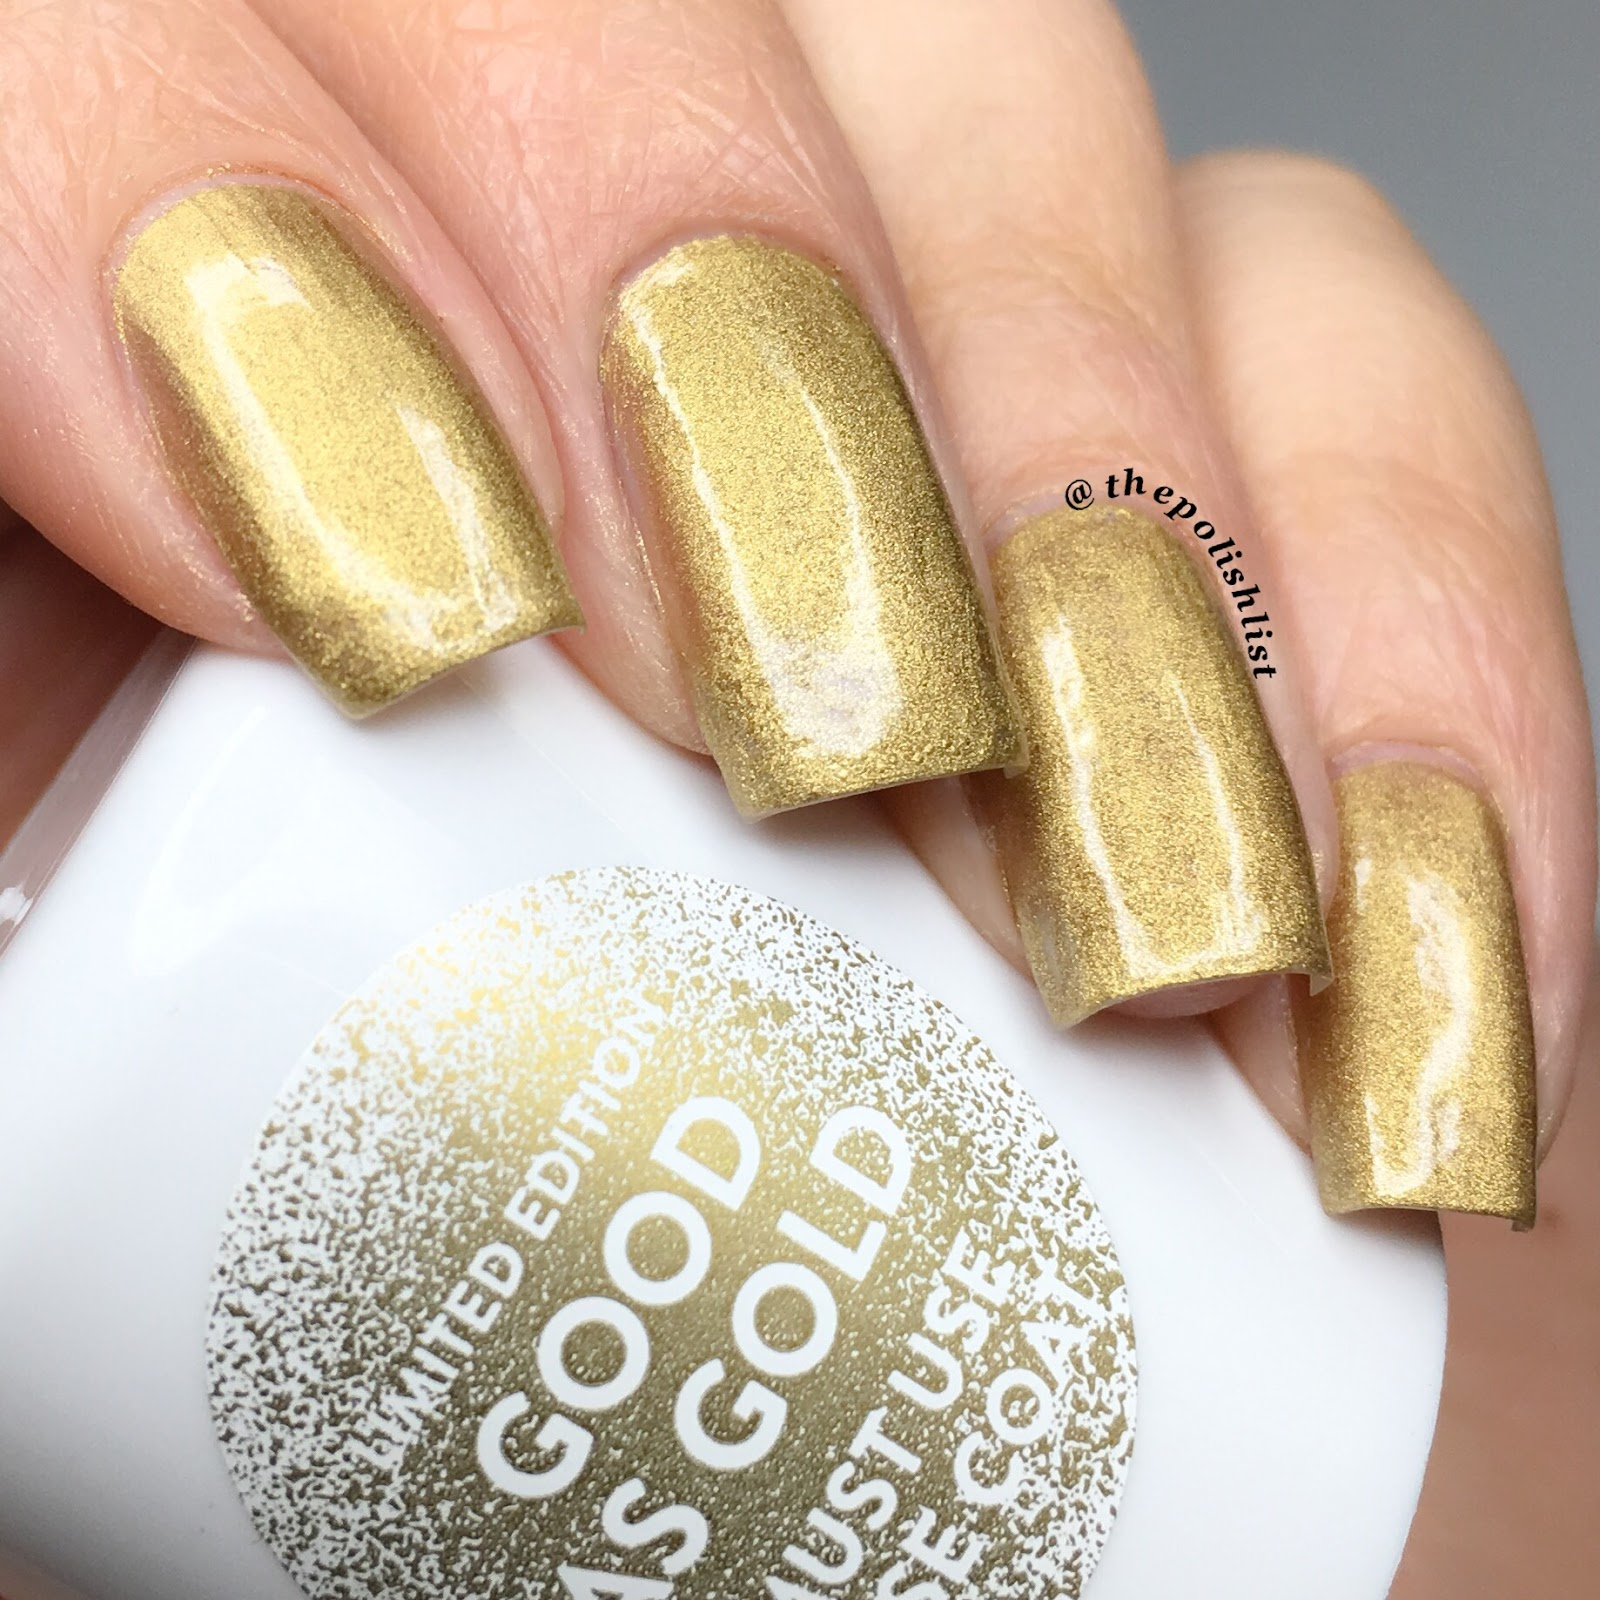 Does it work nails inc paint can spray on nail - Nails Inc Good As Gold Paint Can Spray